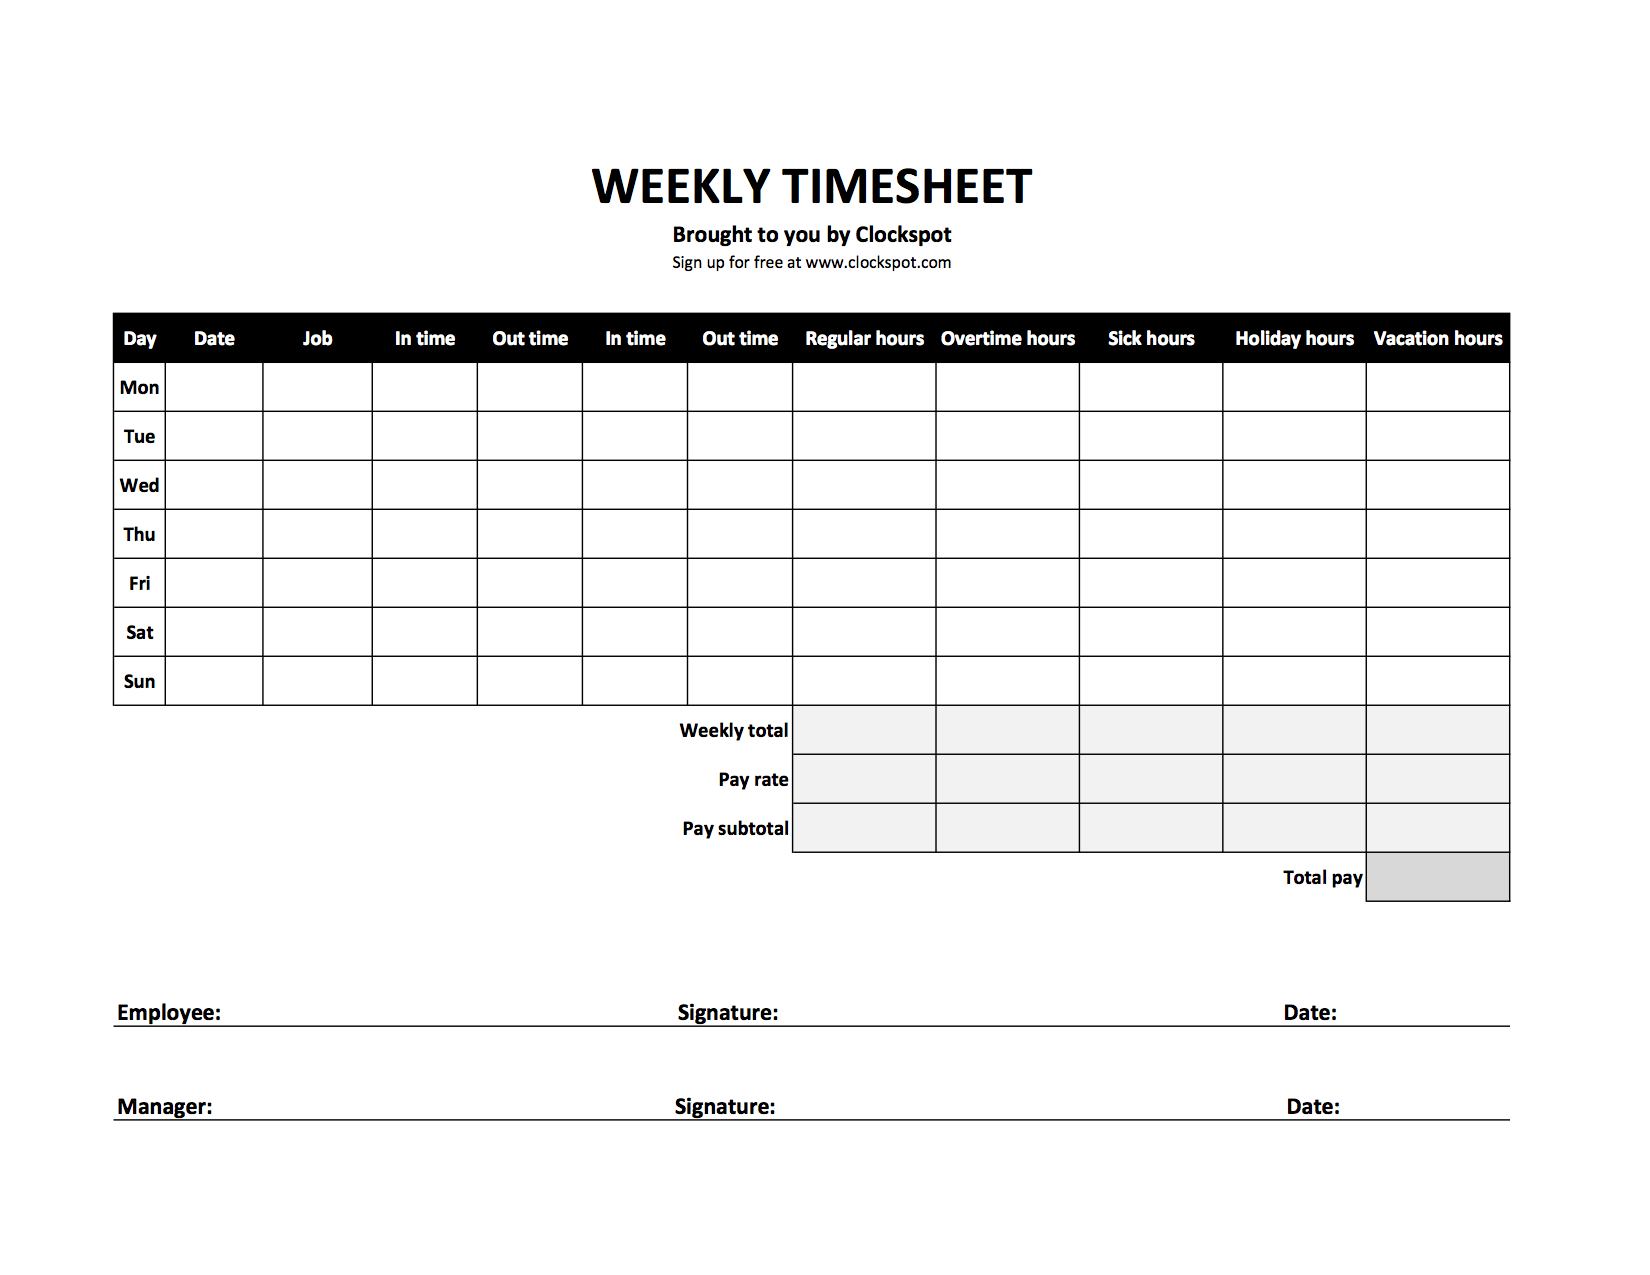 Time Card Spreadsheet Template Free Throughout Free Time Tracking Spreadsheets  Excel Timesheet Templates